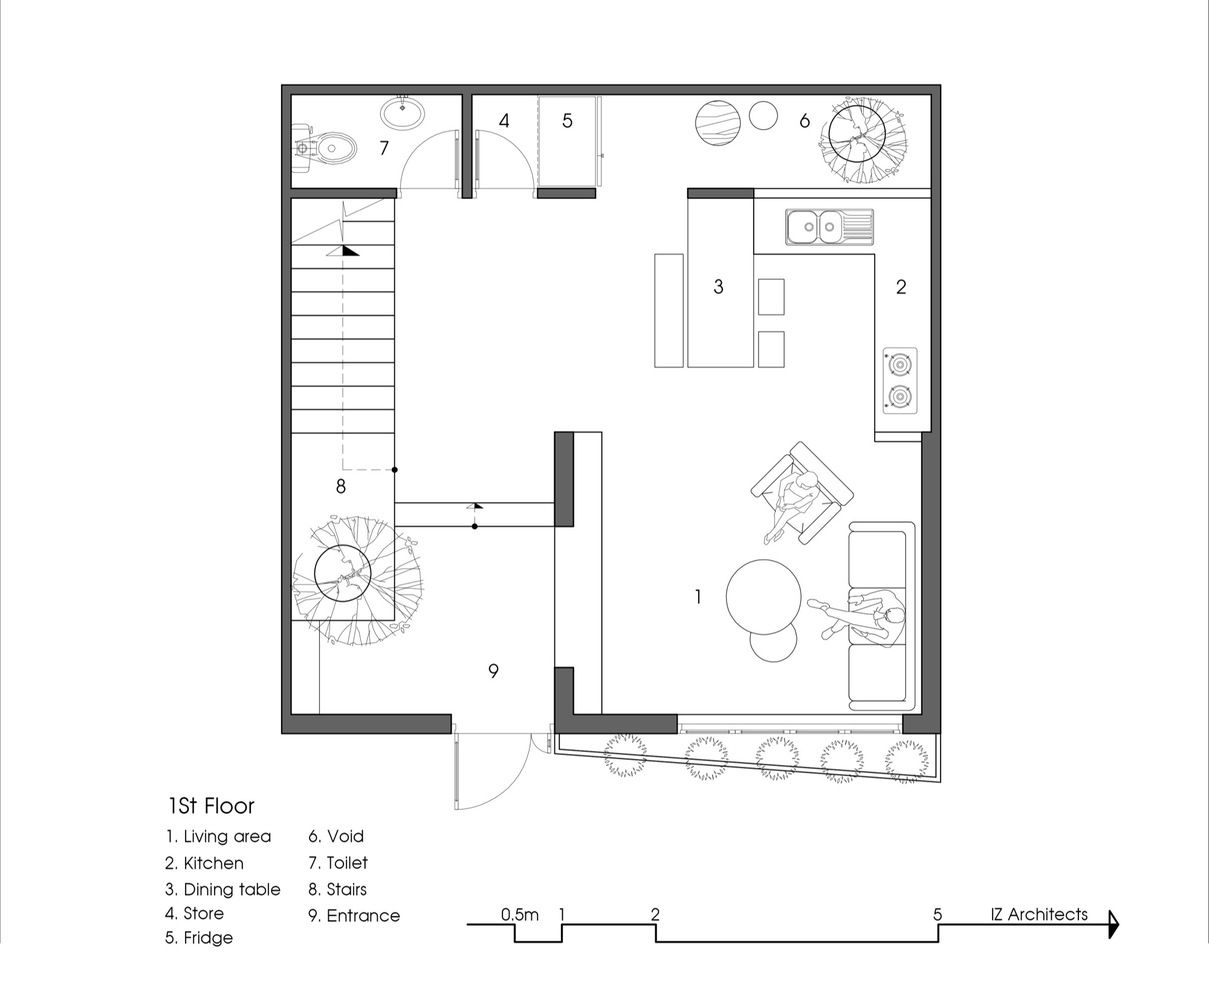 7x7 houseground floor plan